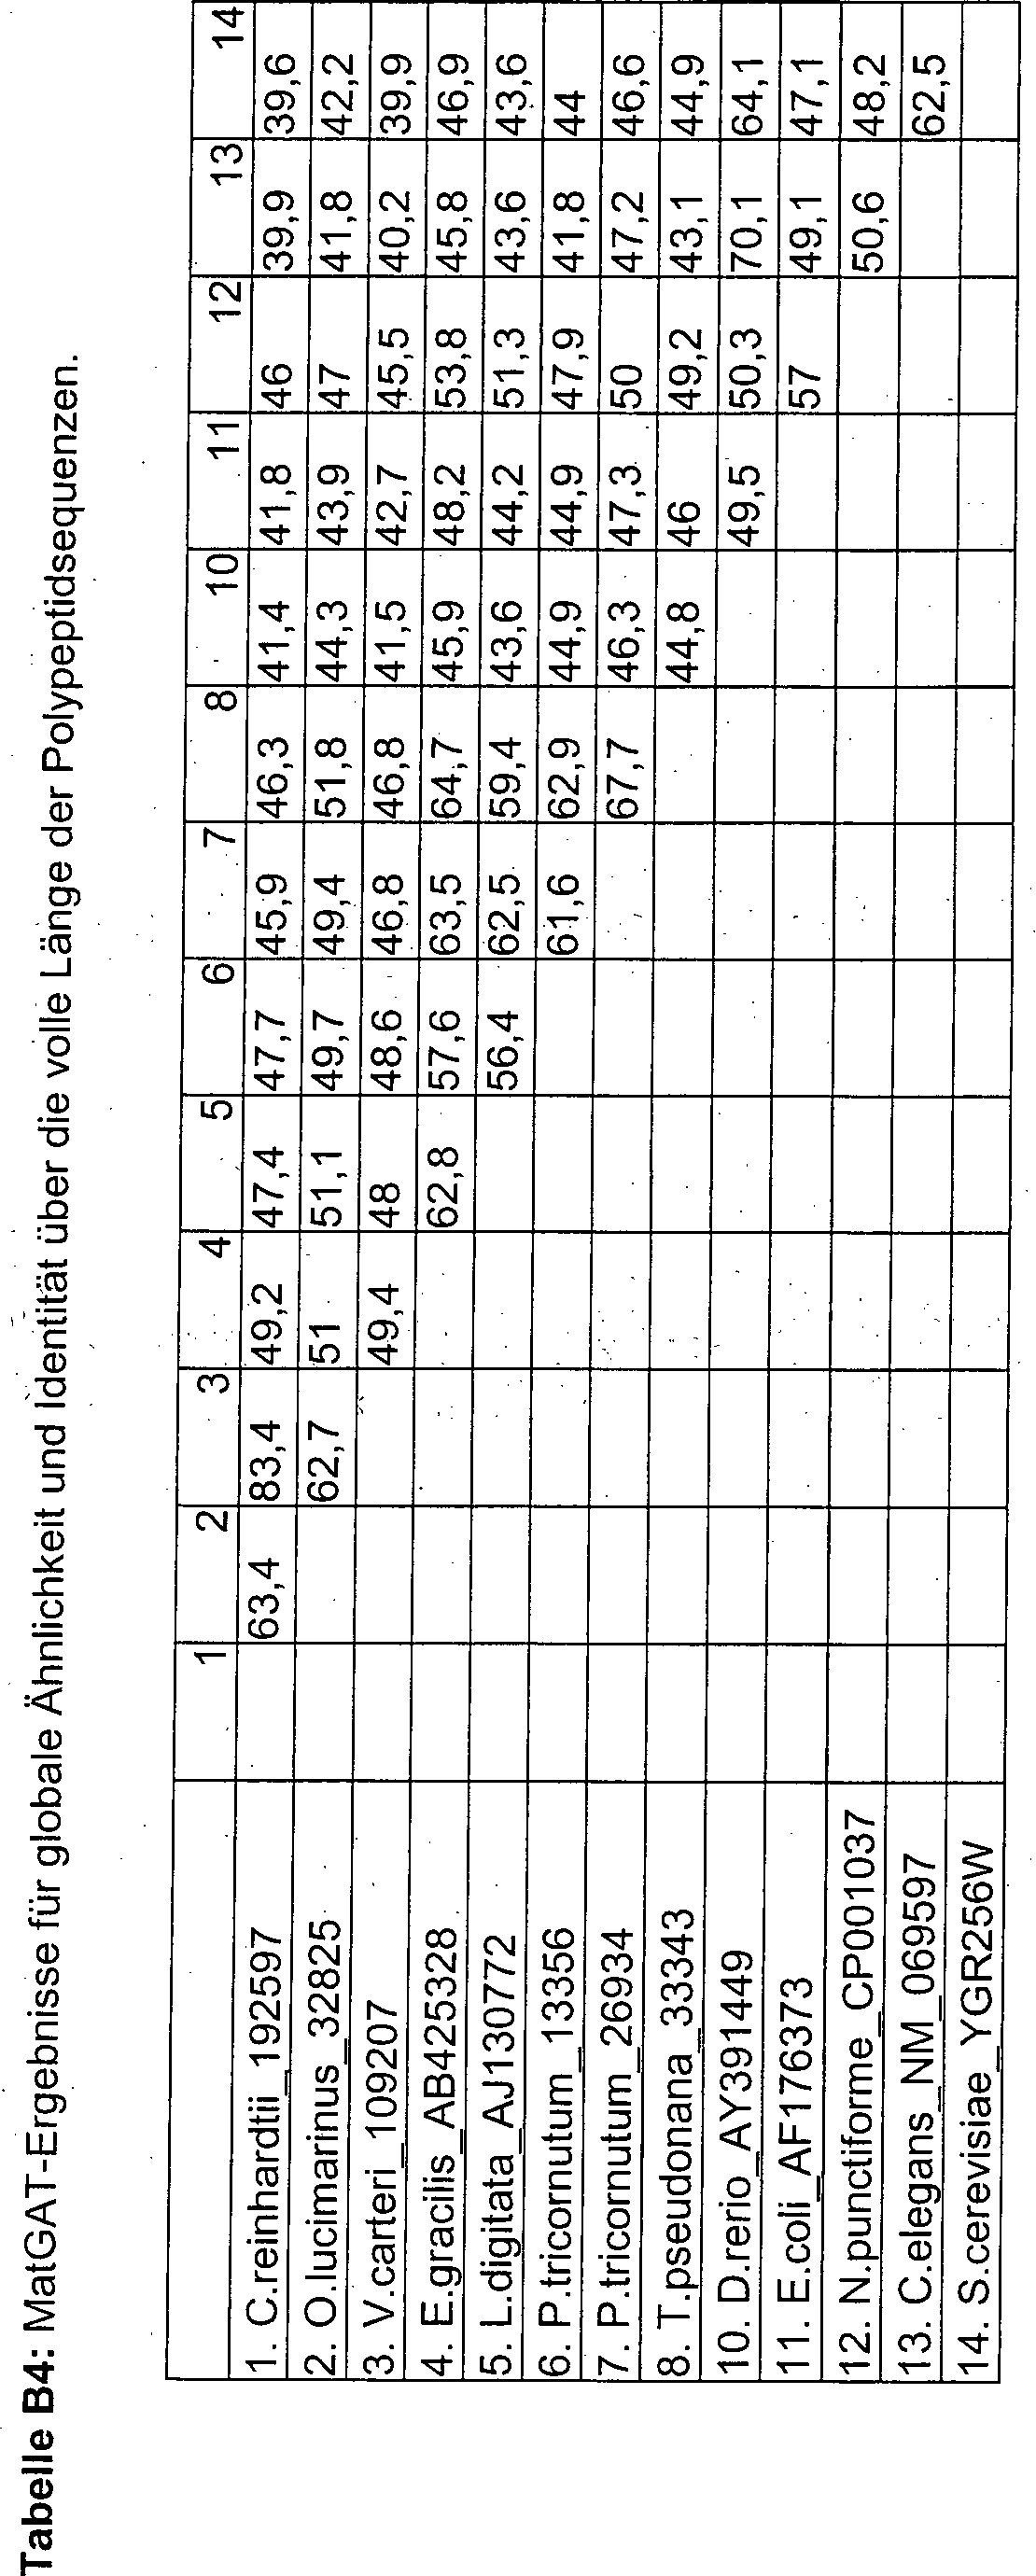 DE112009001667T5 - Plants having enhanced yield-related traits and methods  of making the same - Google Patents